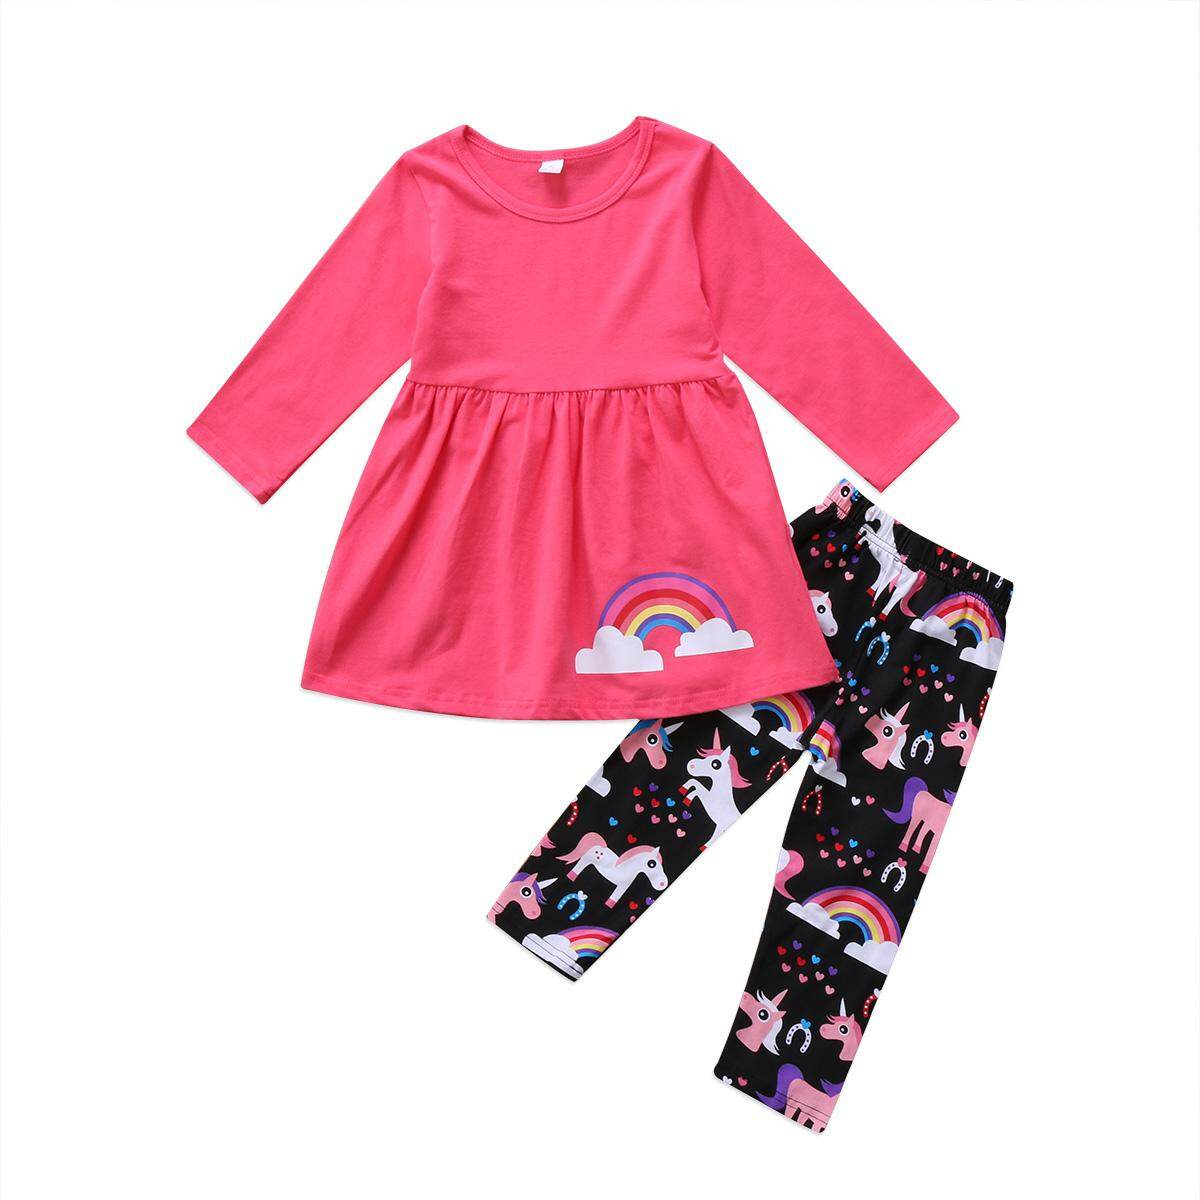 23406ac08f716 Baby Girls Clothing Sets Singapore | Lazada